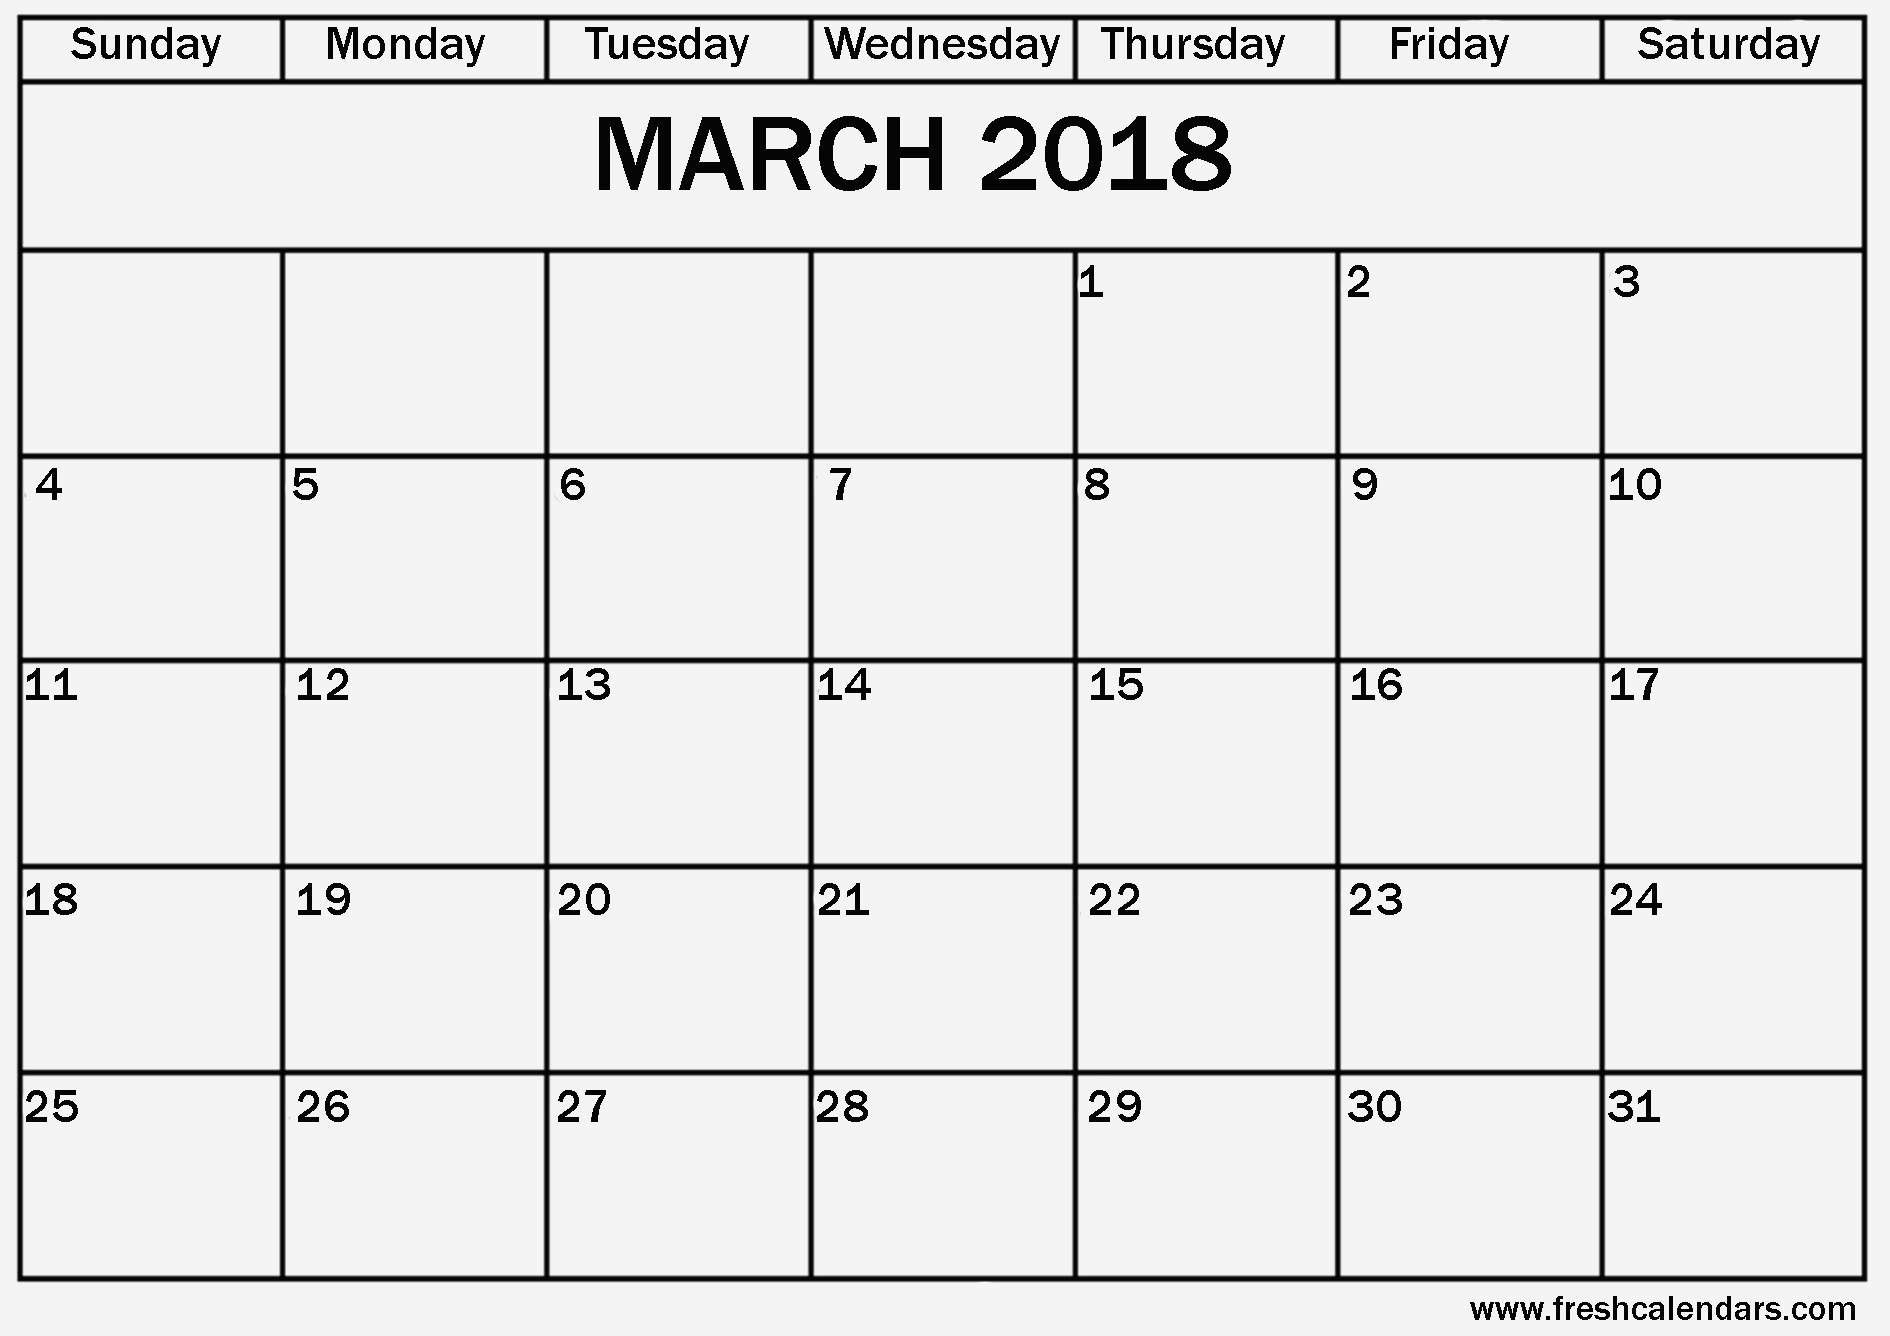 March Calendar Templates Mejores Y Más Novedosos Excel Monthly Calendar Template the Spreadsheet Library Of March Calendar Templates Más Actual Calendar Lovely Free Calendar Pages Resume Template Resume